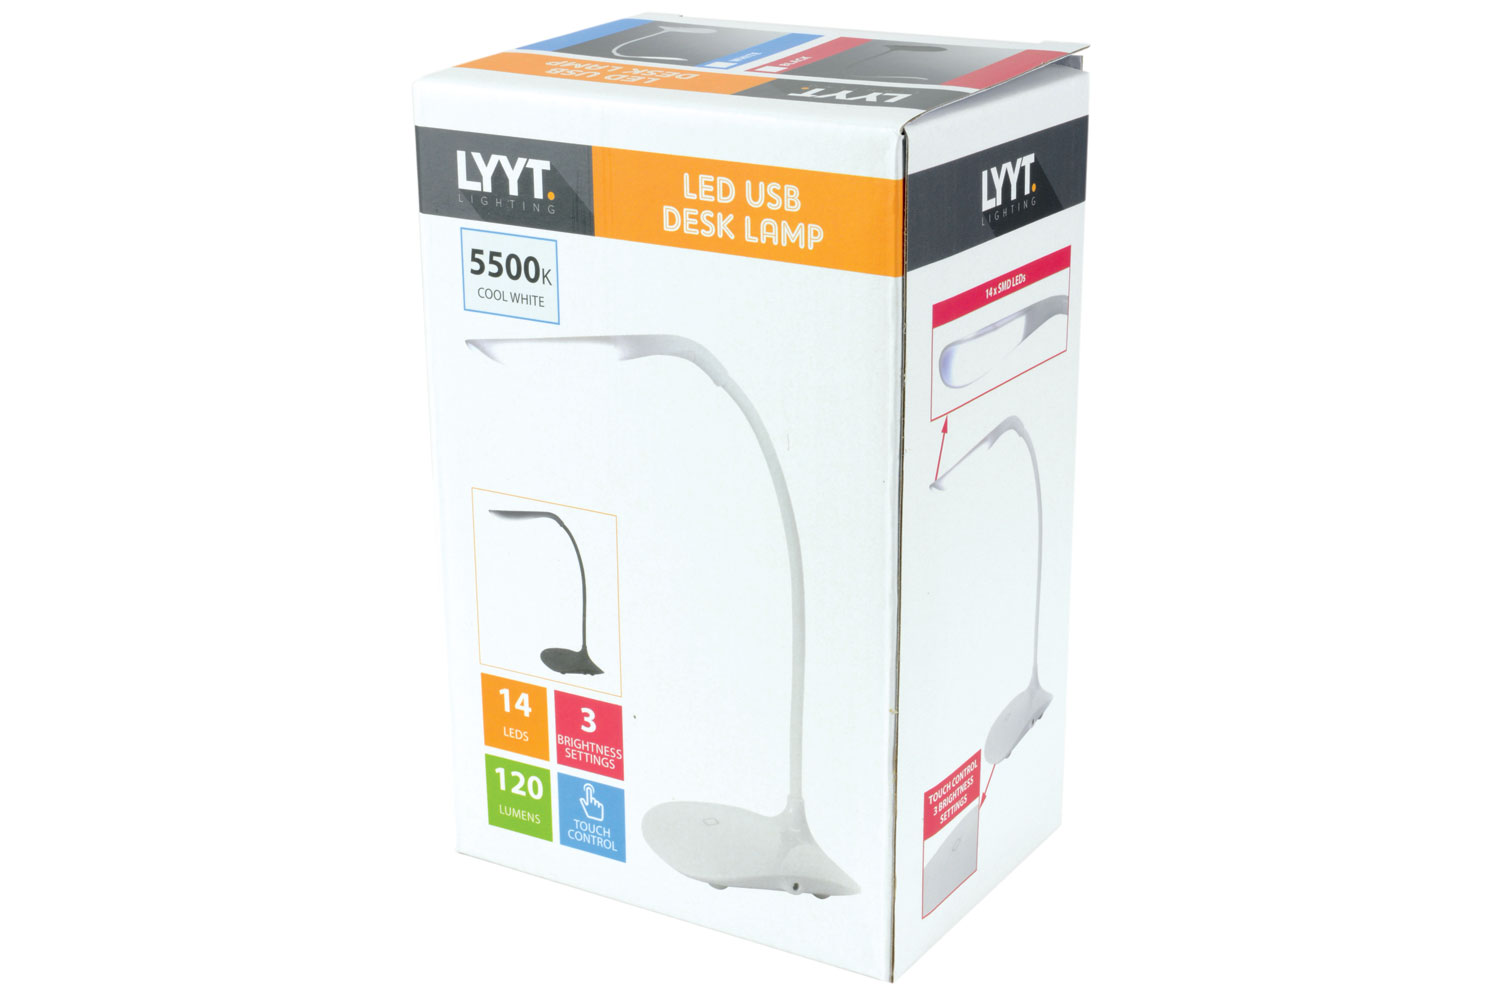 lyyt Compact Battery/USB Powered Desk Lamp